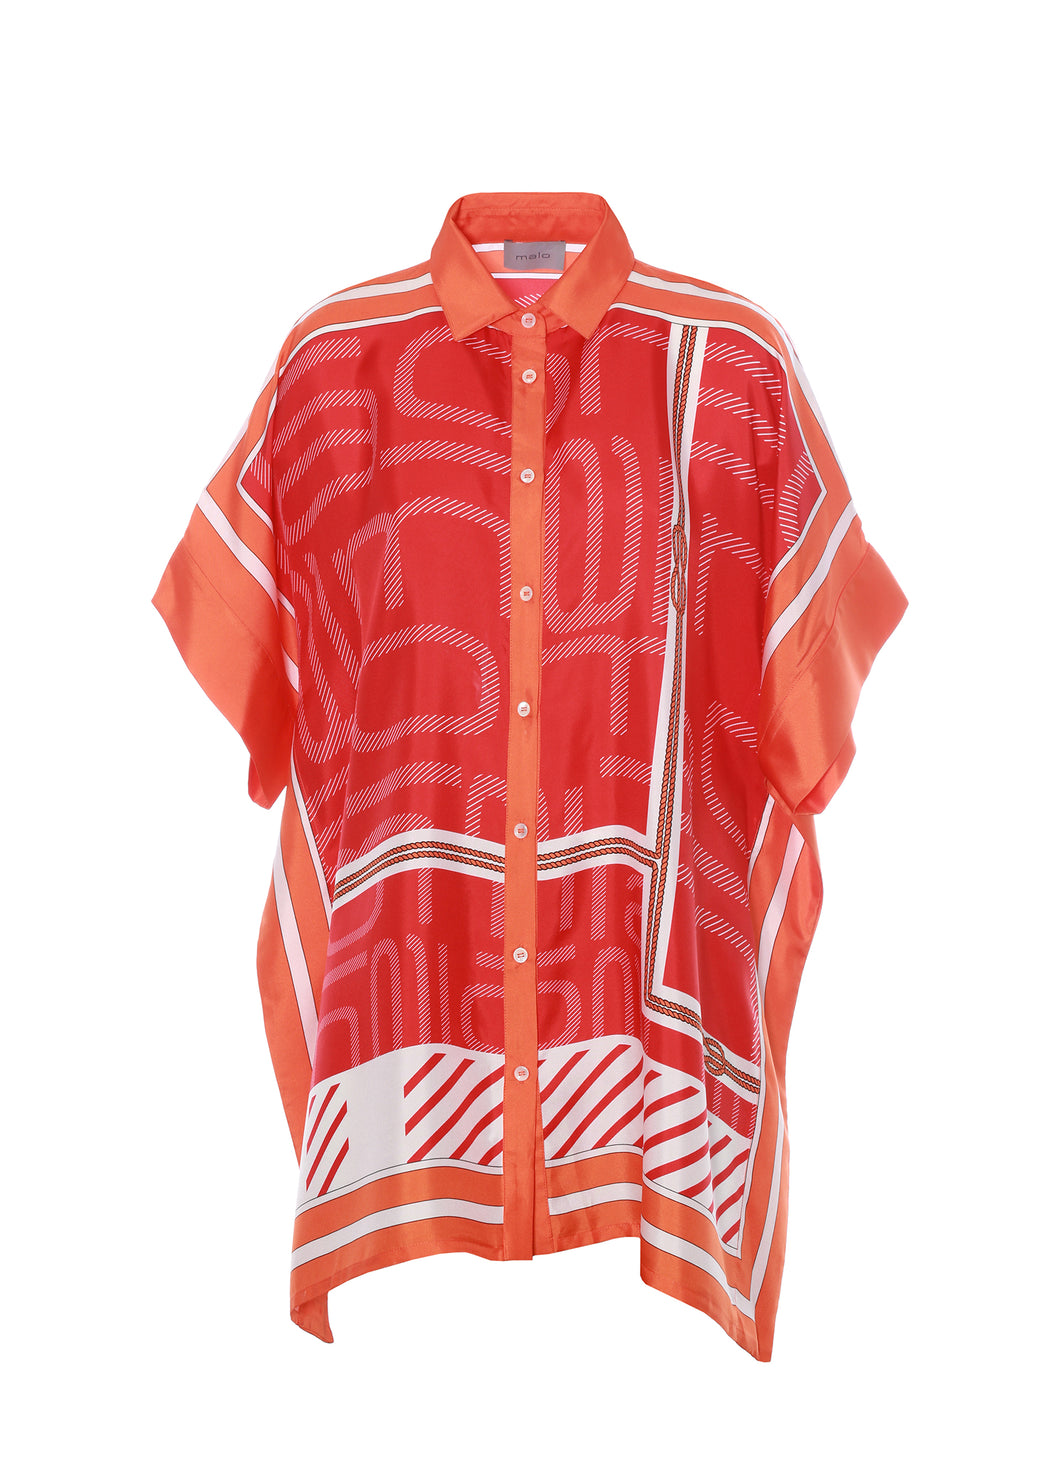 Carrè printed shirt